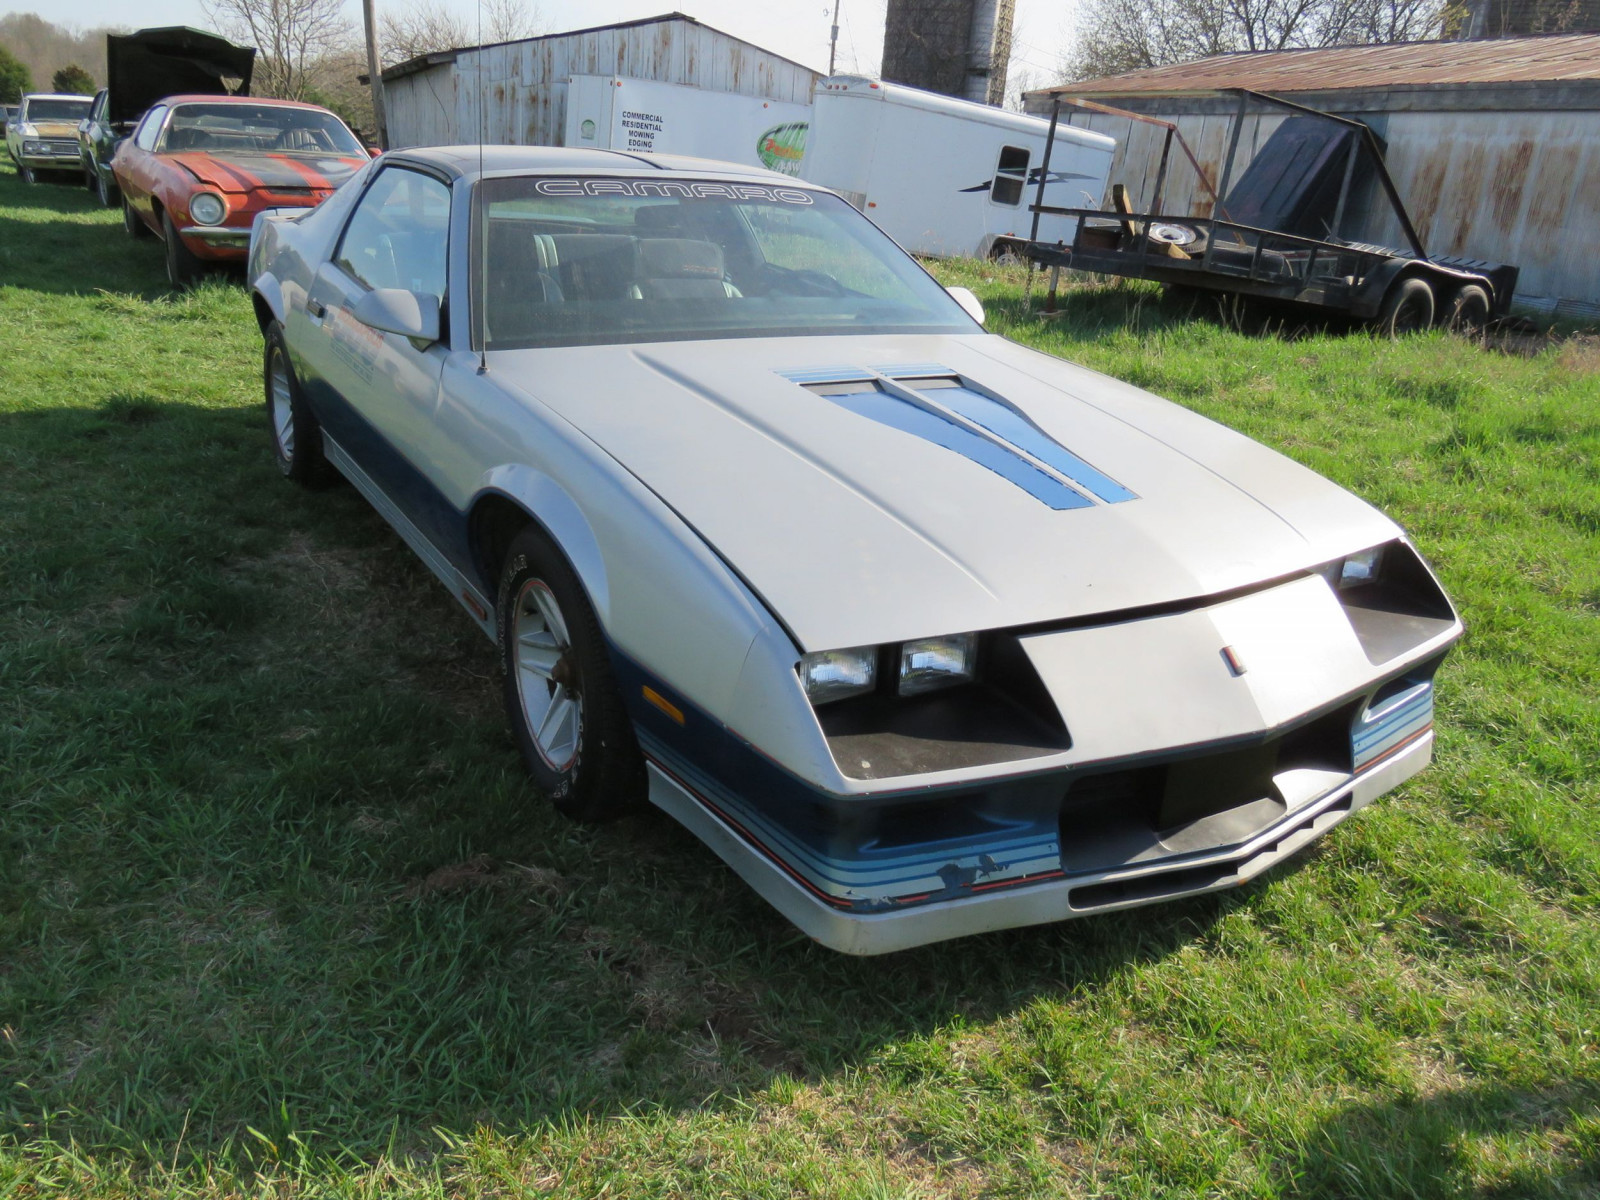 1982 Chevrolet Camaro Indianpolis 500 Edition Pace Car - Image 3